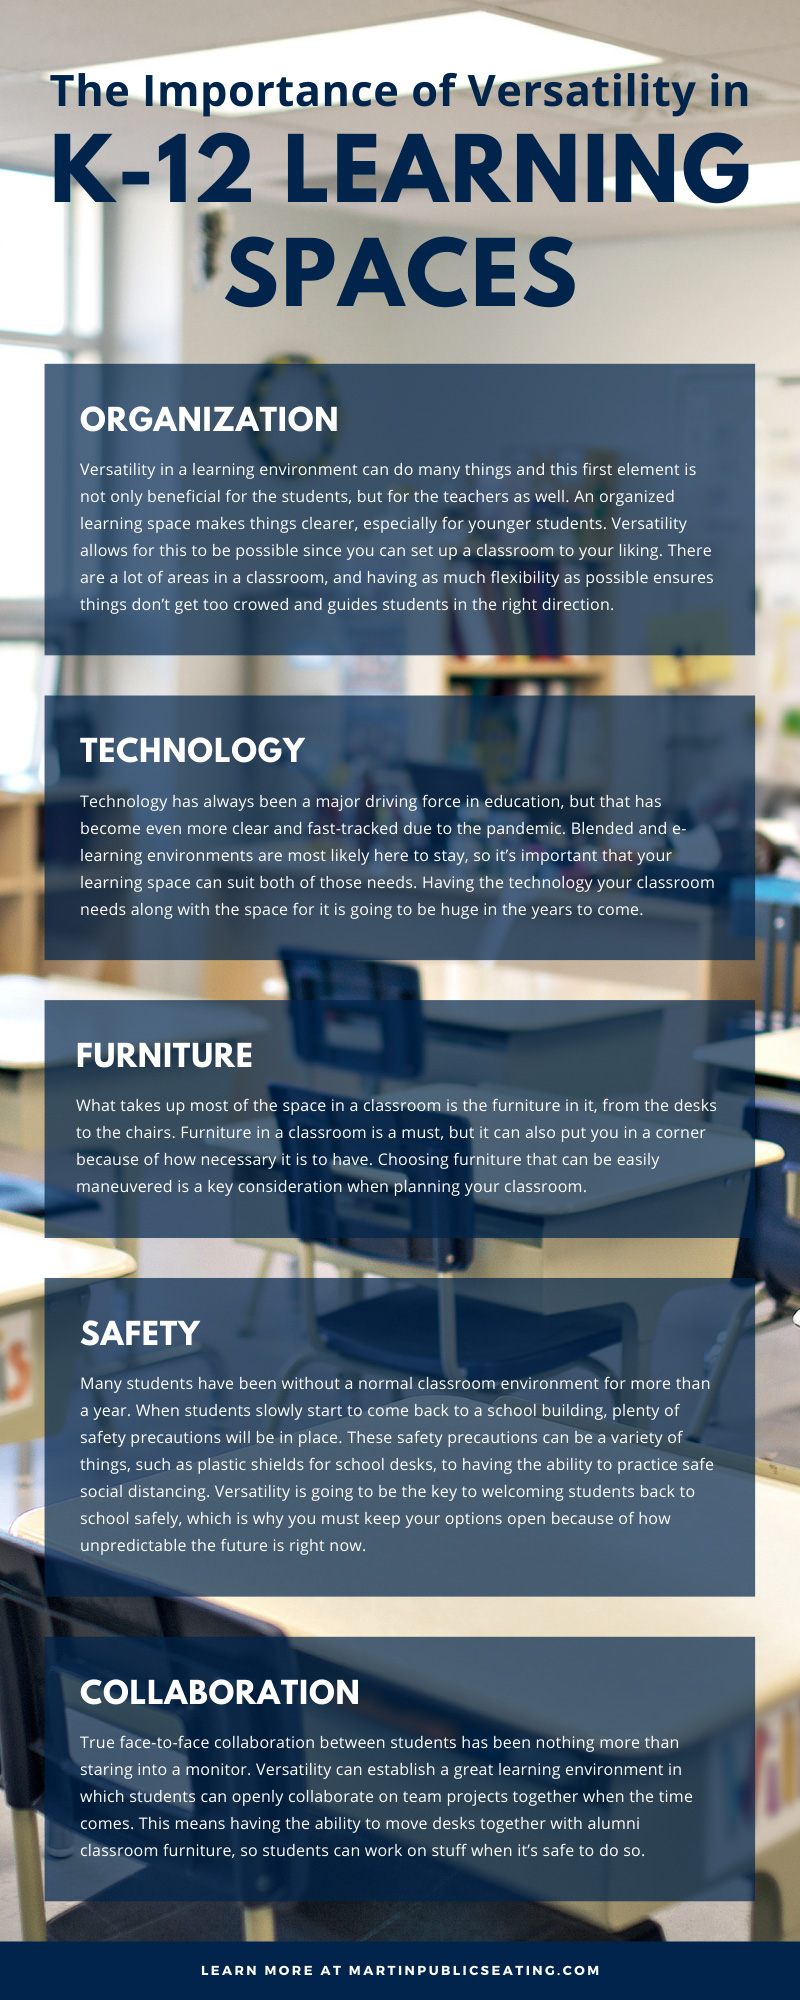 The Importance of Versatility in K-12 Learning Spaces